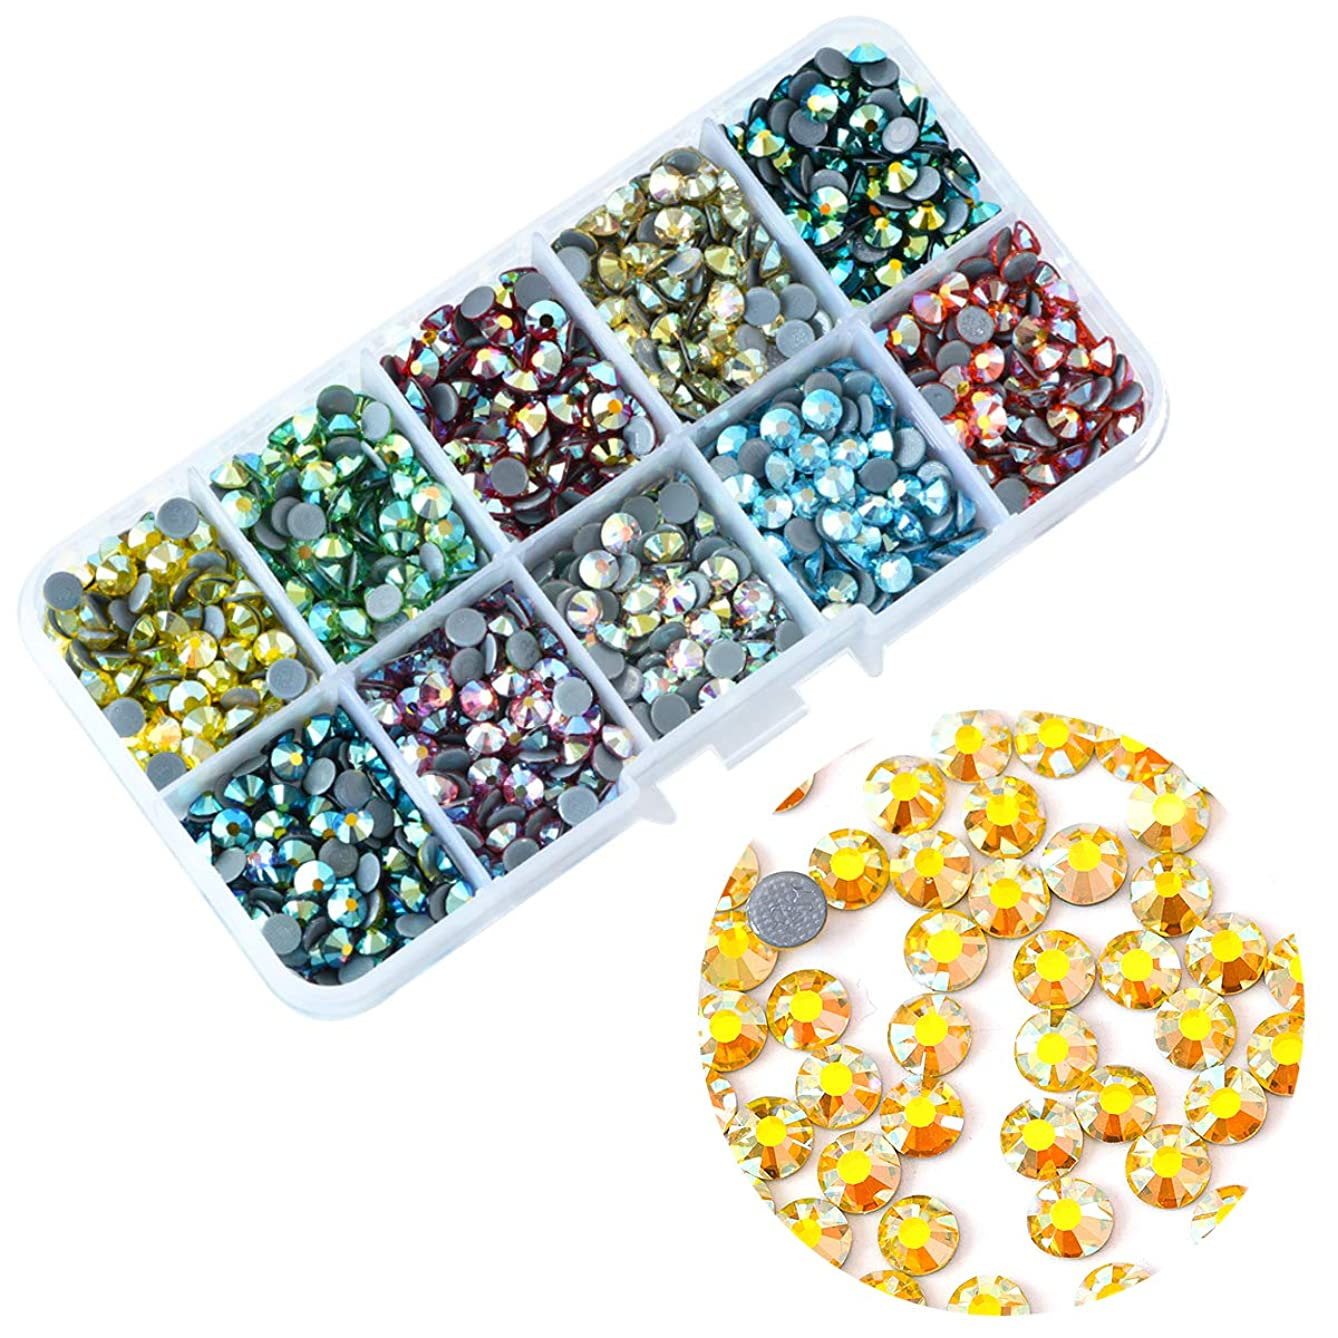 BLIINGINBOX 2000pcs Mix Colors AB with Box, 10 Colors ss10(2.7-2.99mm) Hotfix Rhinesstone Garment Crystal Glass Material